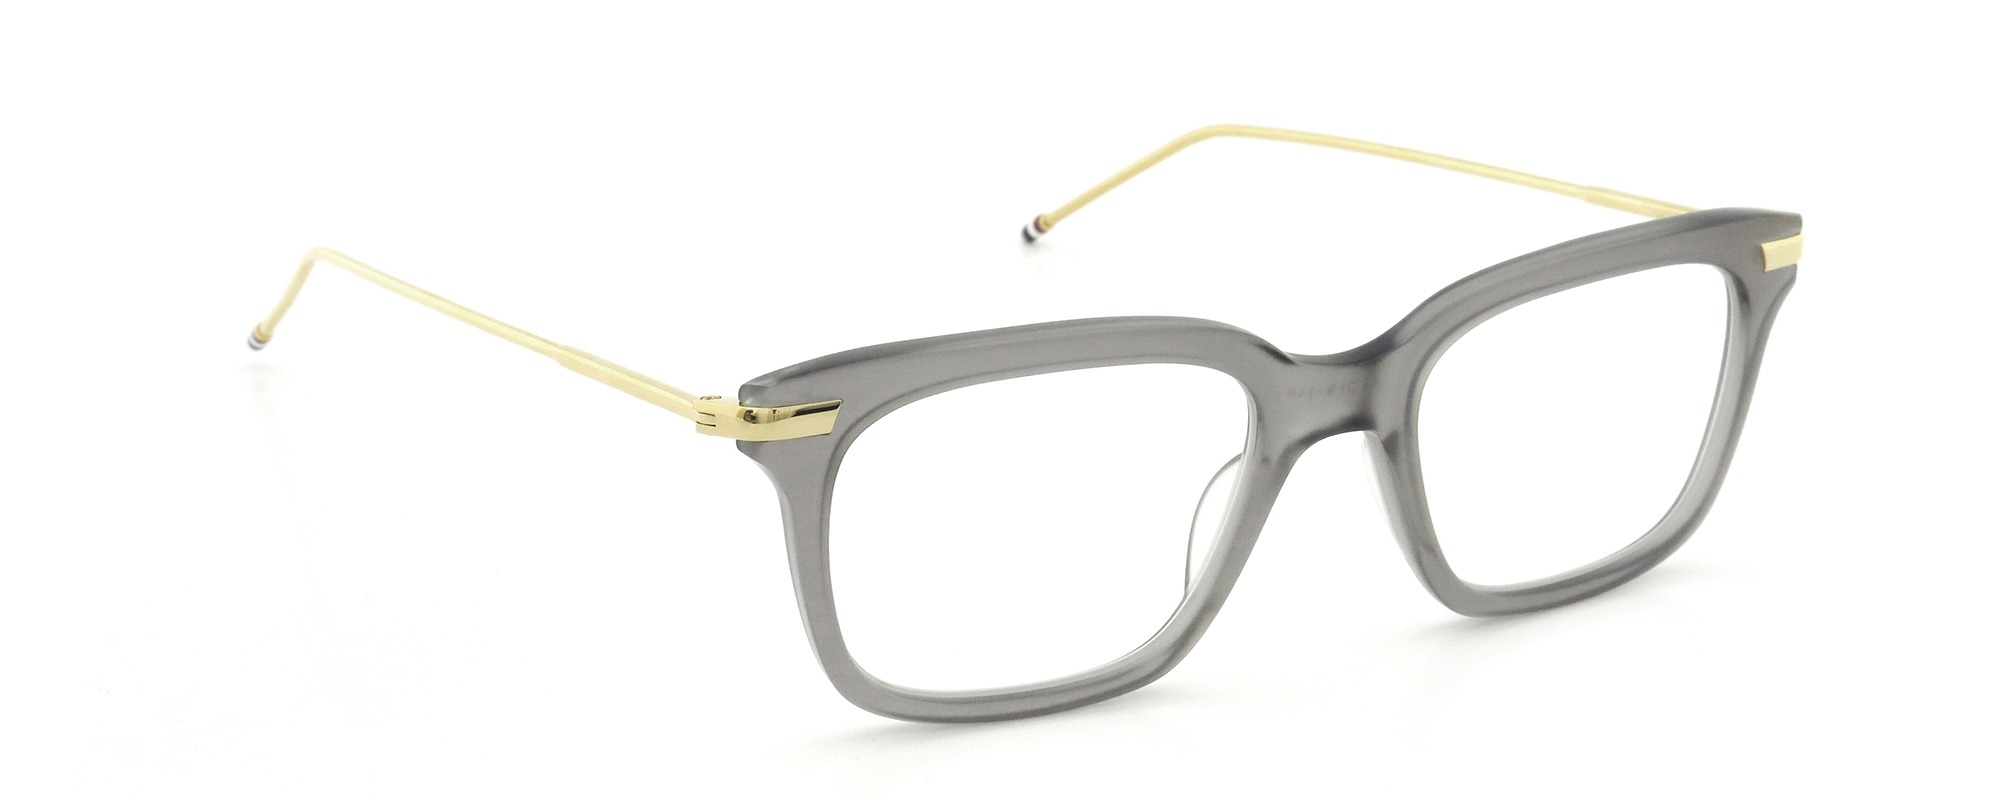 THOM BROWNE. TB-701-G GRY/18kGLD 49size